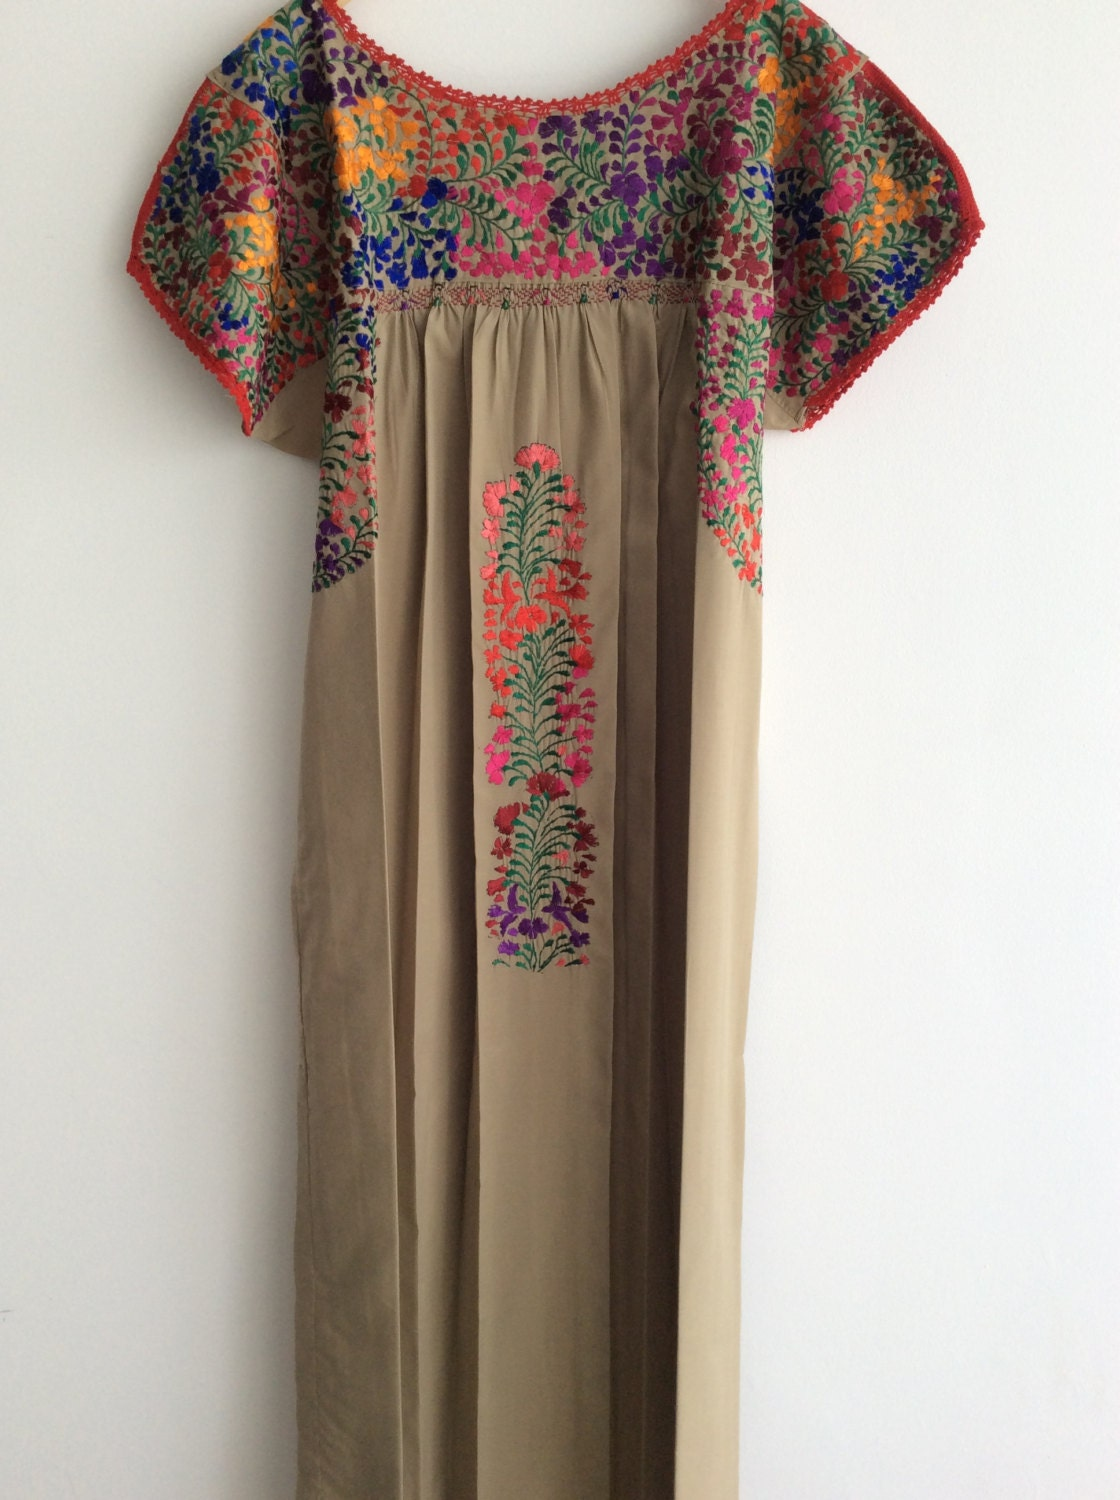 Mexican embroidered dress oaxaca mexico abundant splendid